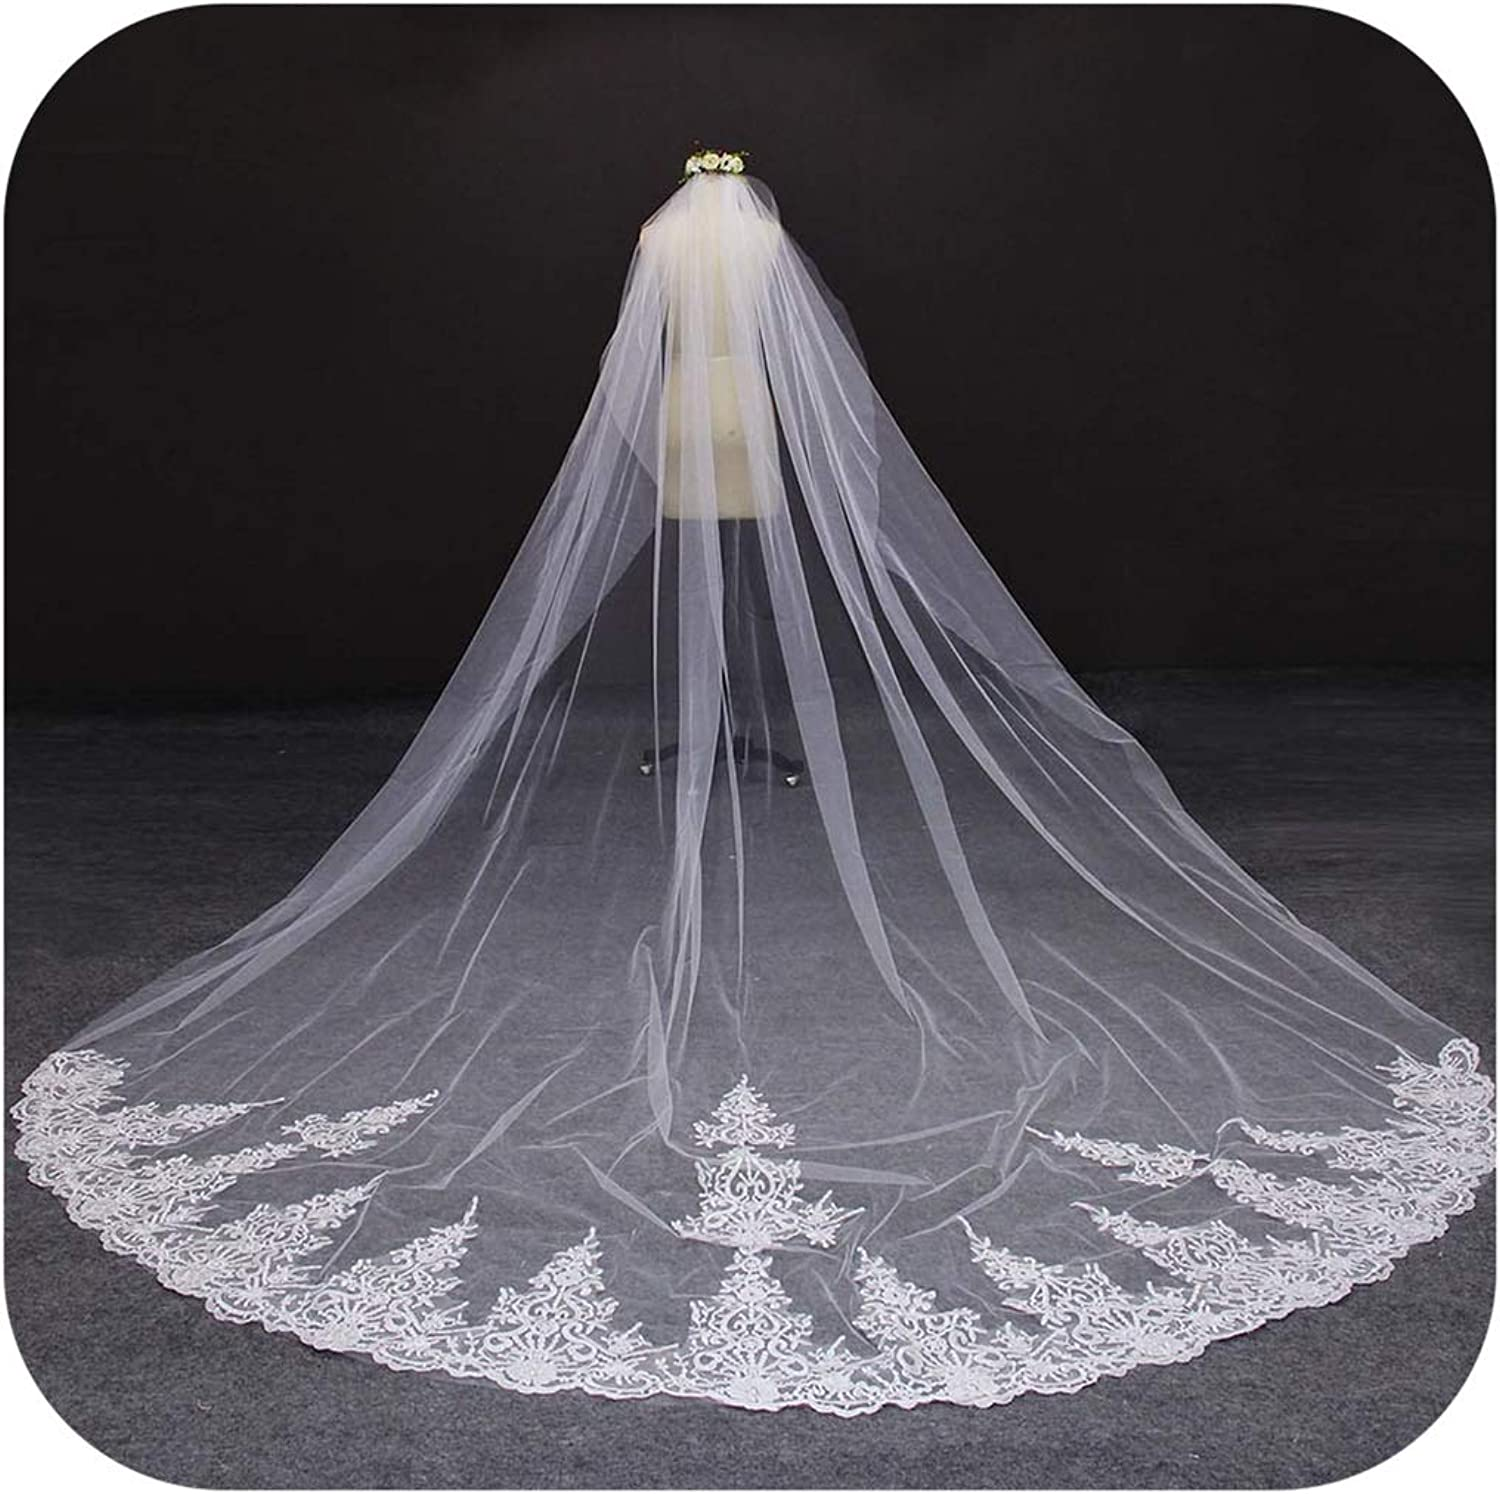 4 Meter White Ivory One Layer Beautiful Cathedral Length Lace Edge Wedding Veil With Comb Long Bridal Veil,White